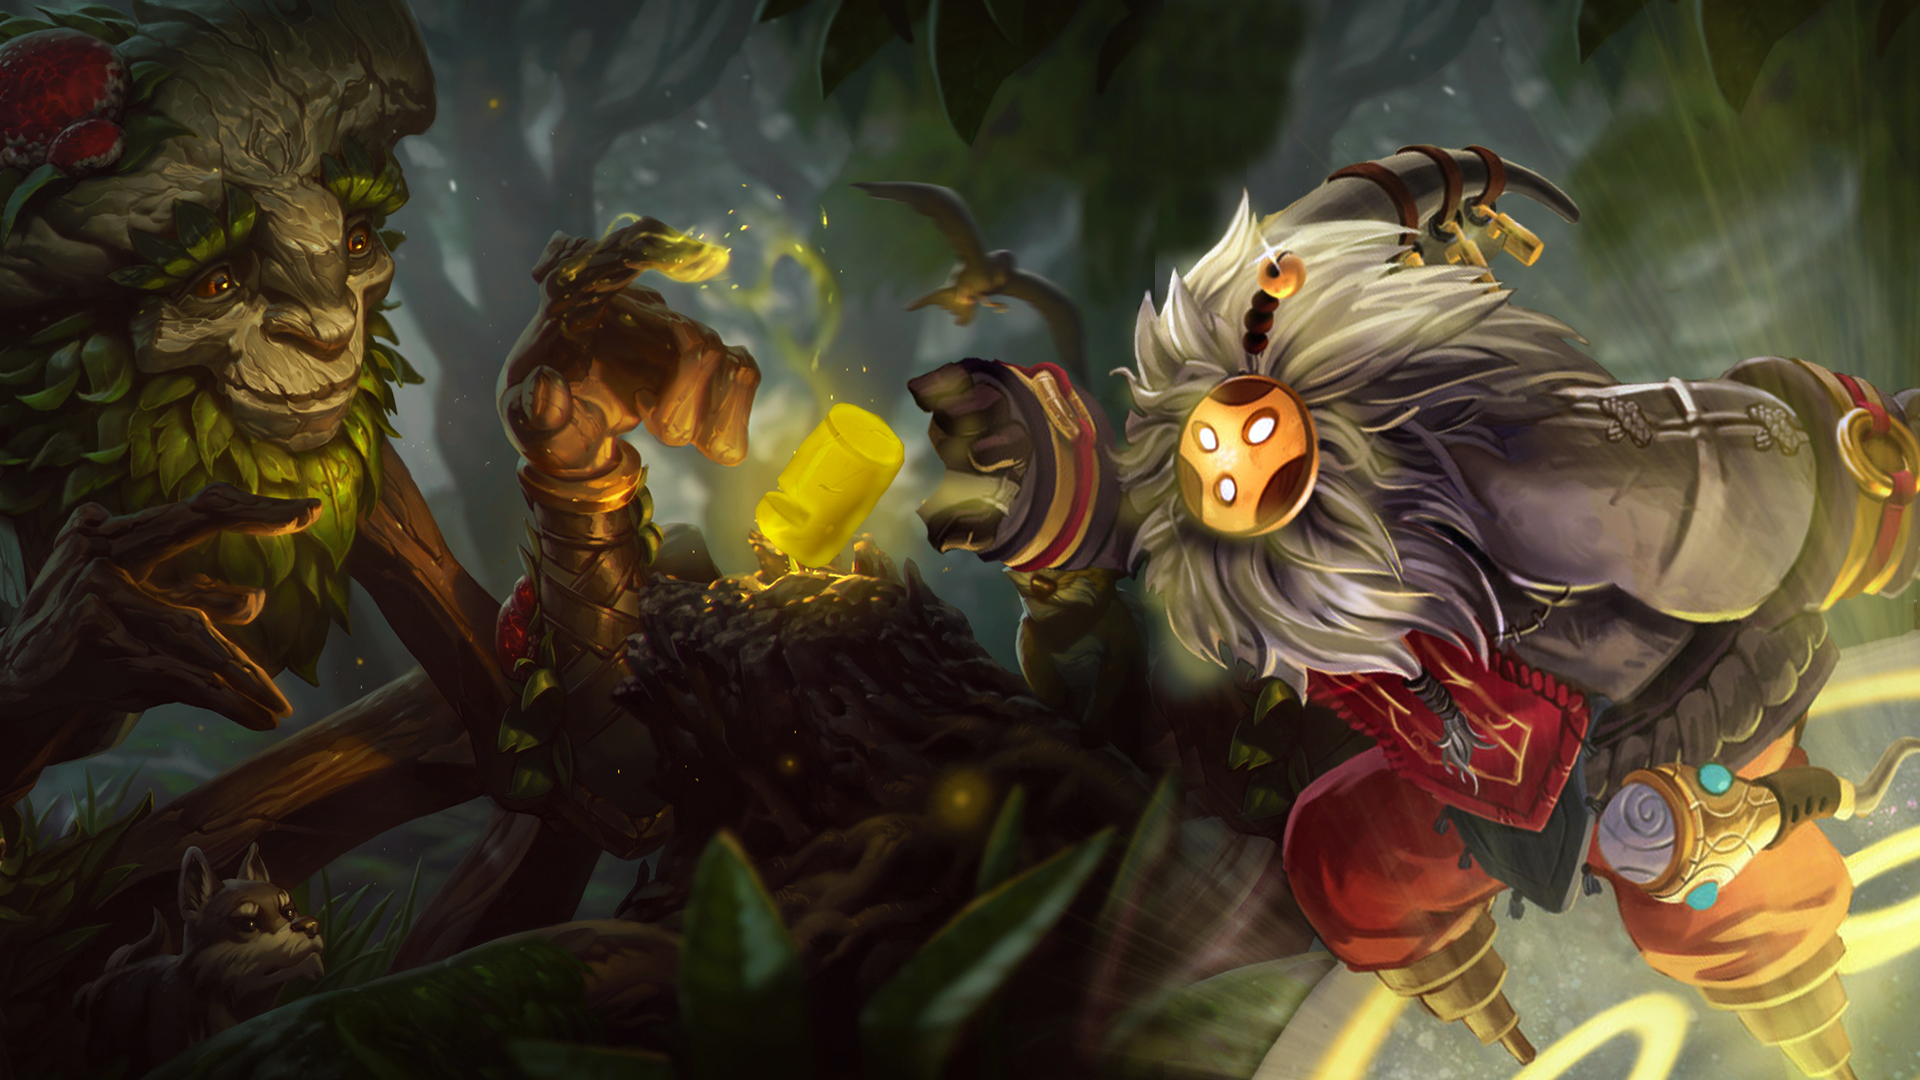 Bard Minimalistic League Of Legends Wallpapers League Of: Ivern And Bard HD Wallpaper